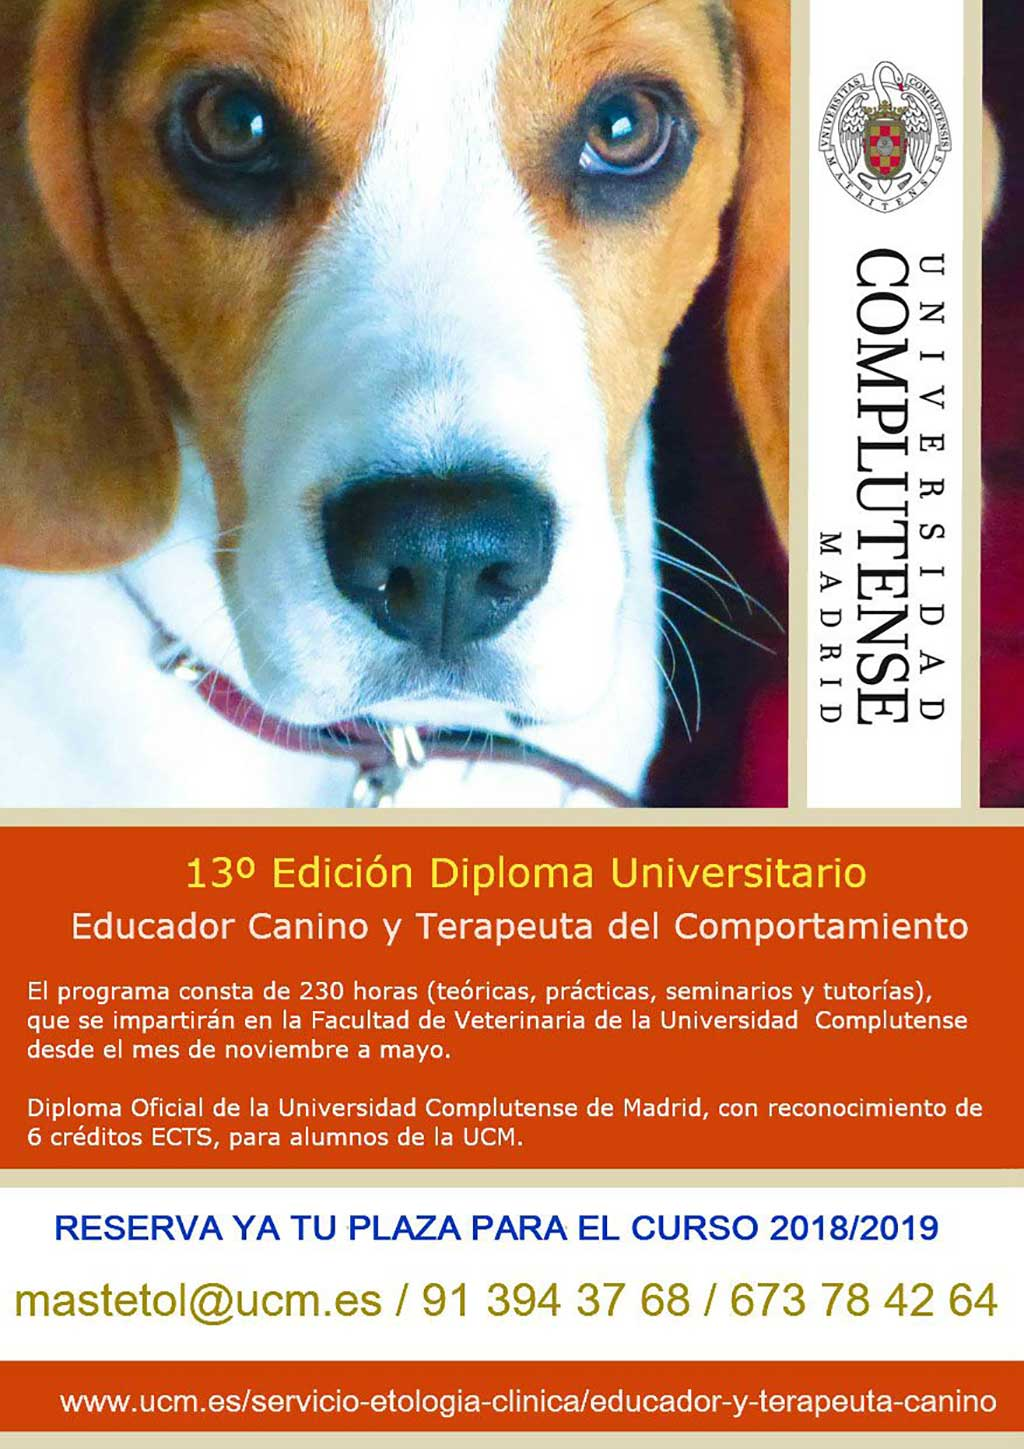 Diploma of the Canine Educator and Behavior Therapist of the UCM.